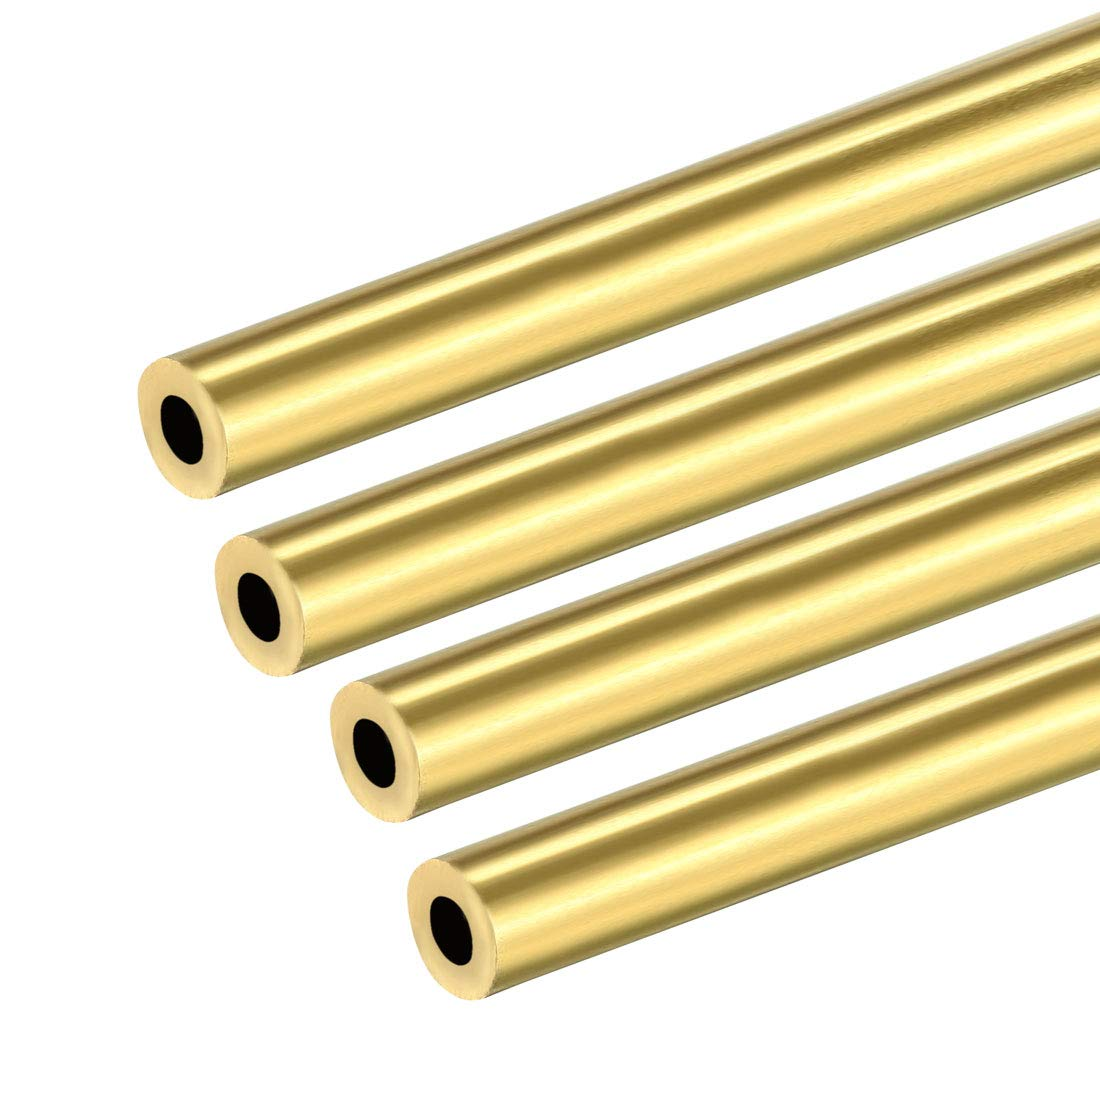 uxcell 4PCS 3mm x 6mm x 500mm Brass Pipe Tube Round Bar Rod for RC Boat